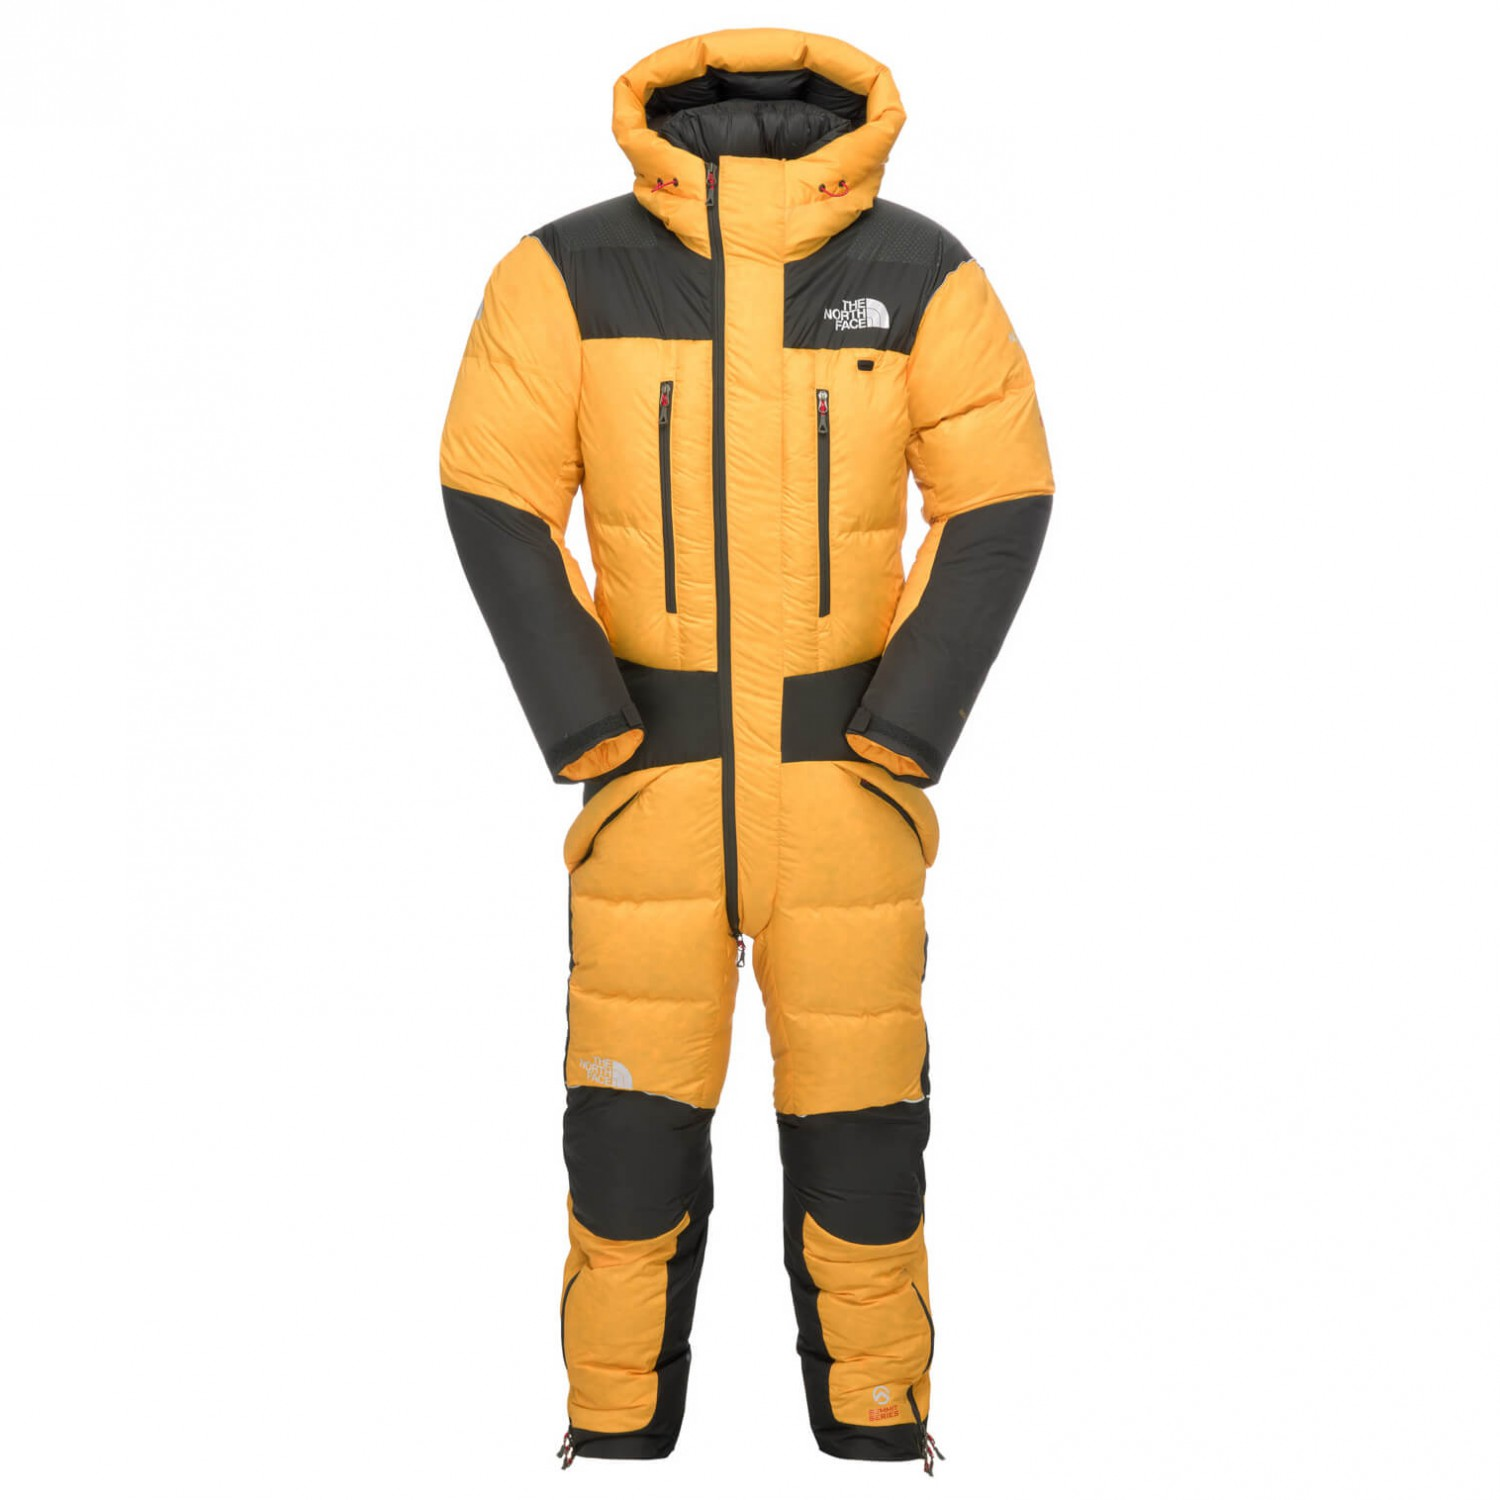 62ff62eb8 The North Face Himalayan Suit - Overall | Buy online | Bergfreunde.eu